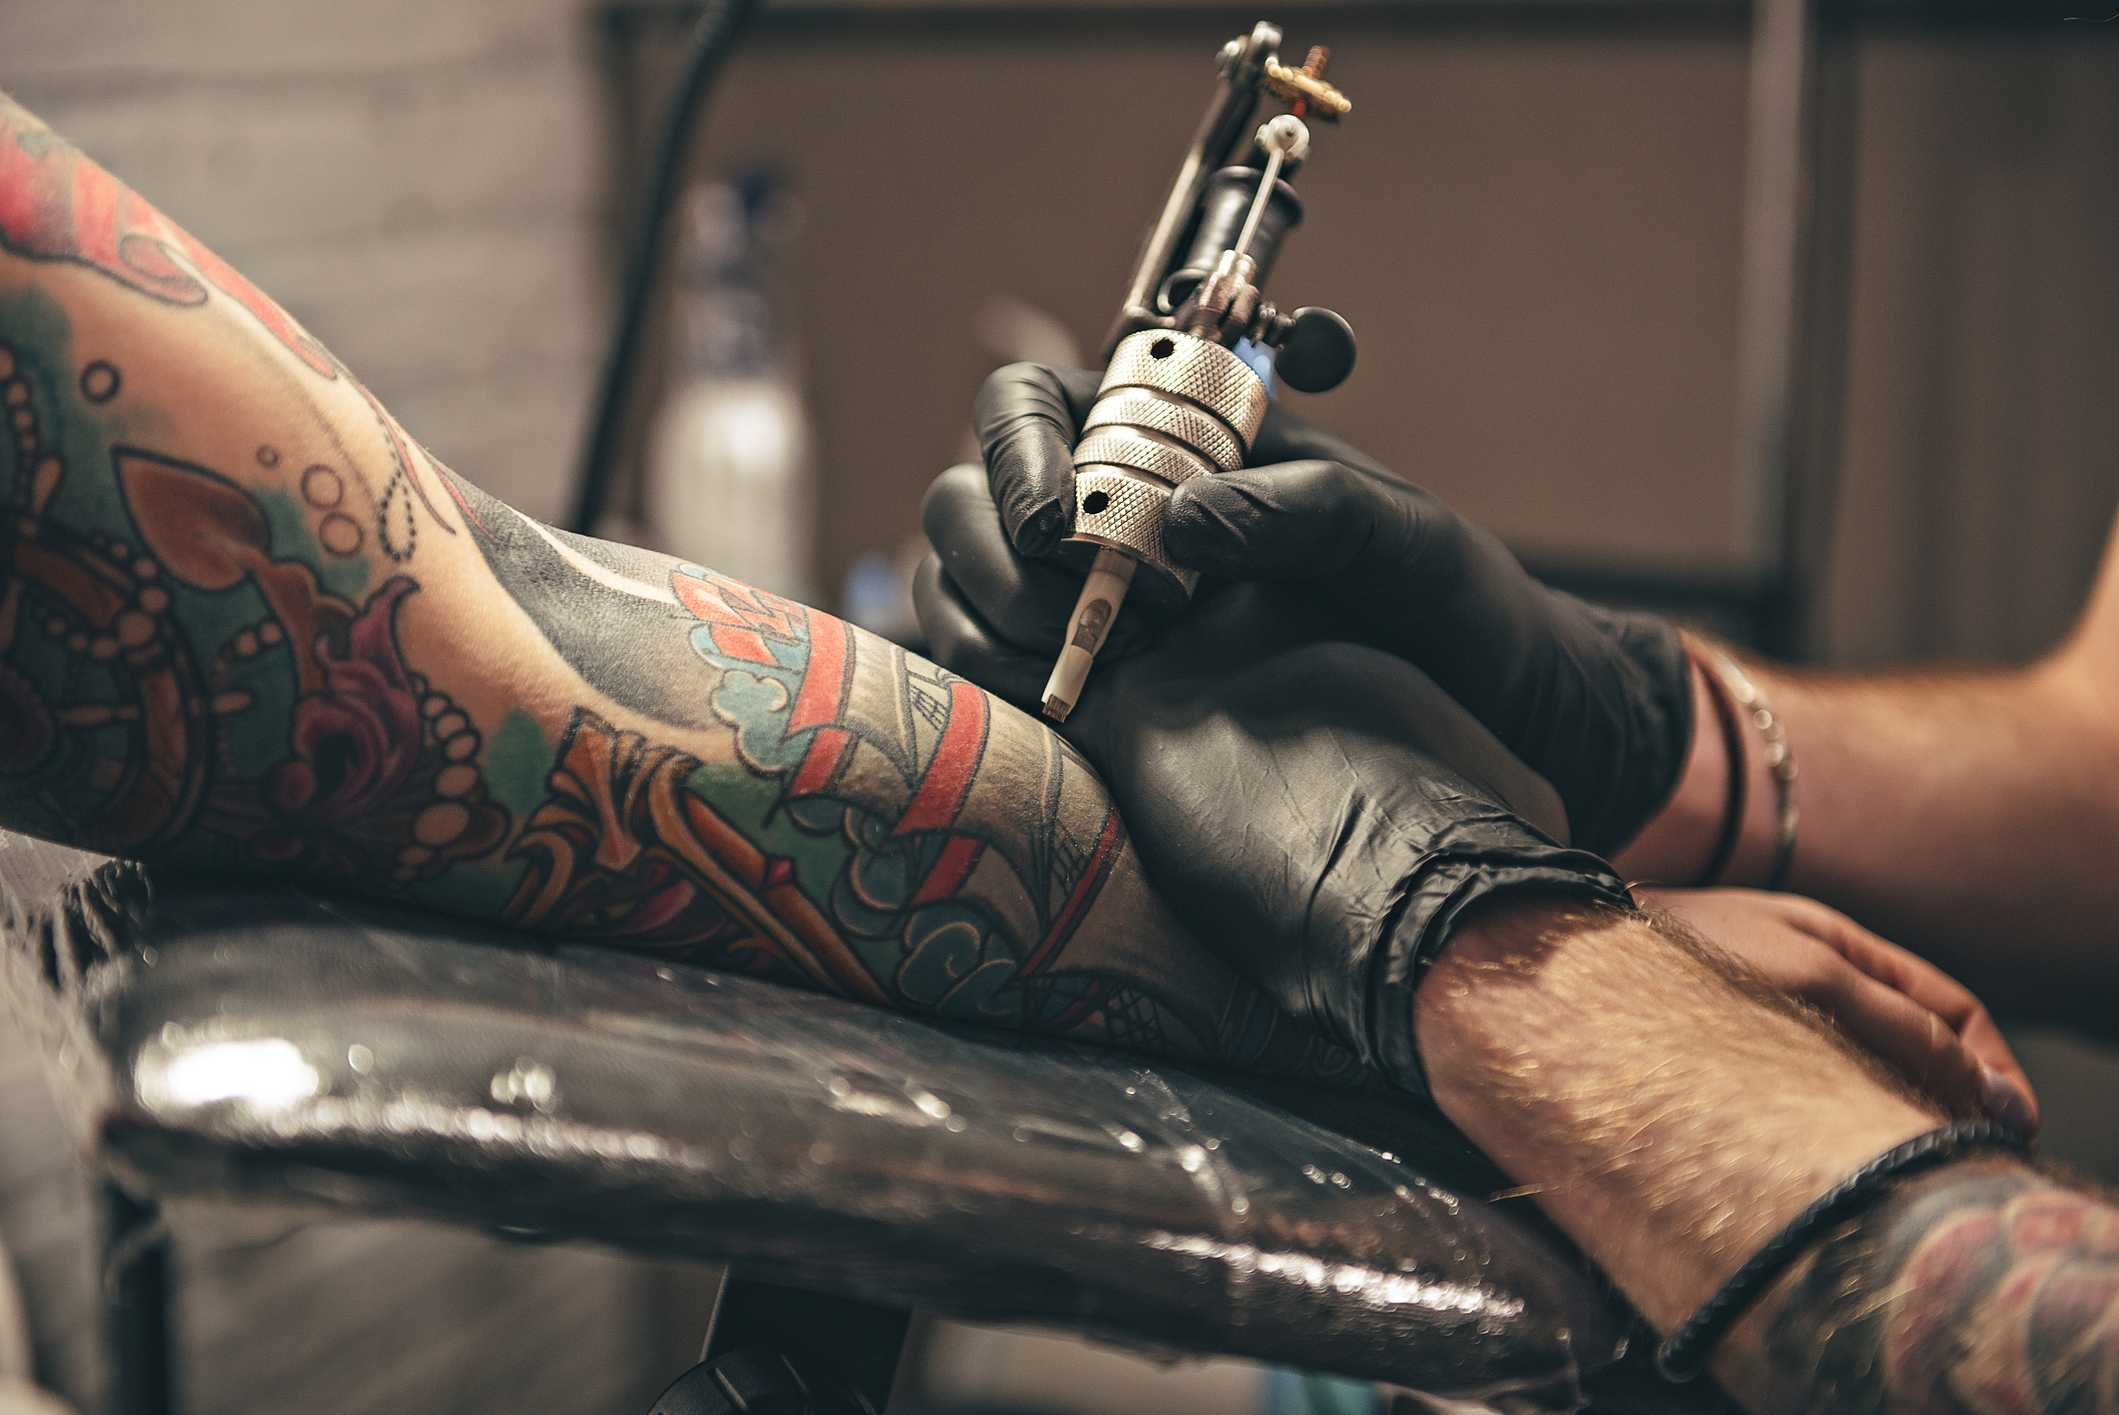 Tattoo Removal Reviews And Cheap Tattoo Supplies